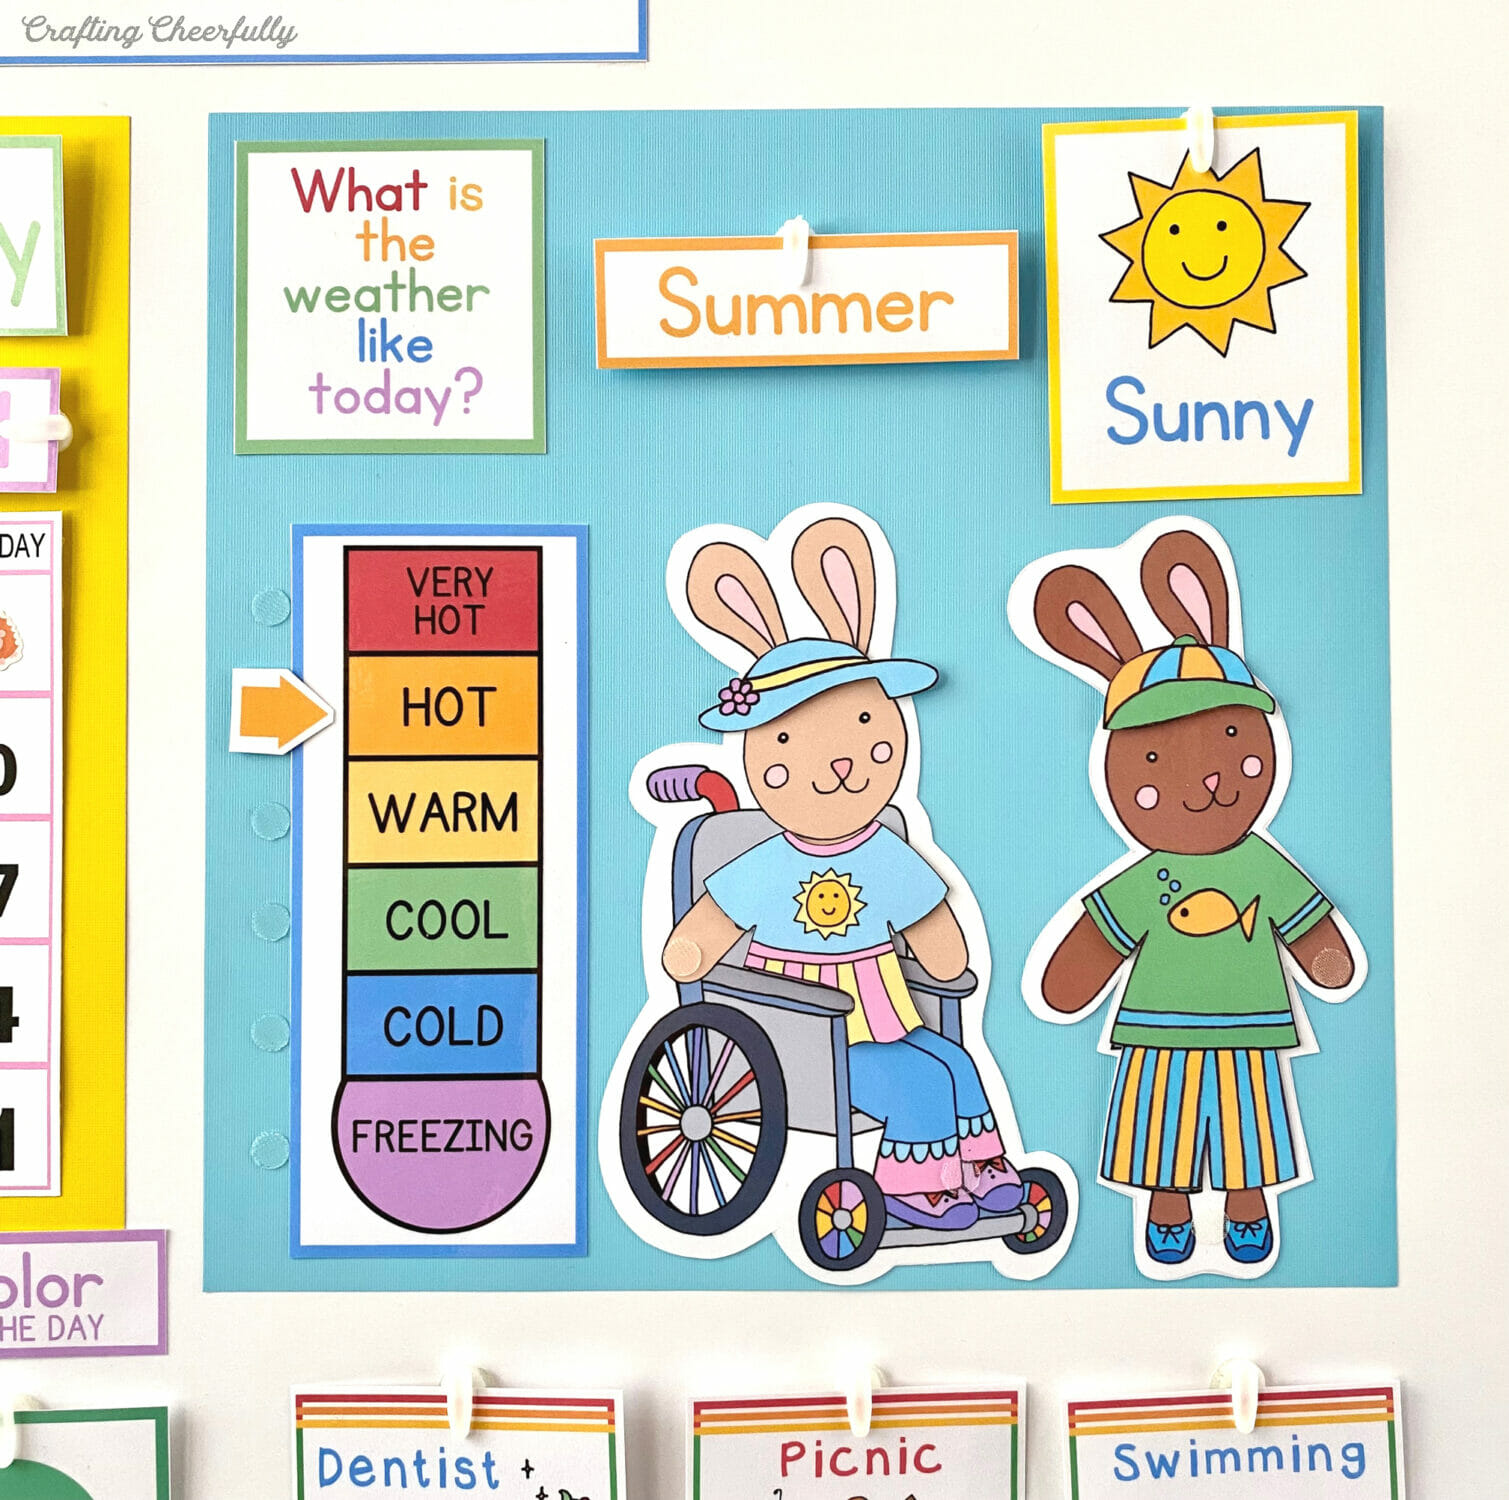 Preschool morning board featuring bunnies dressed for the weather.